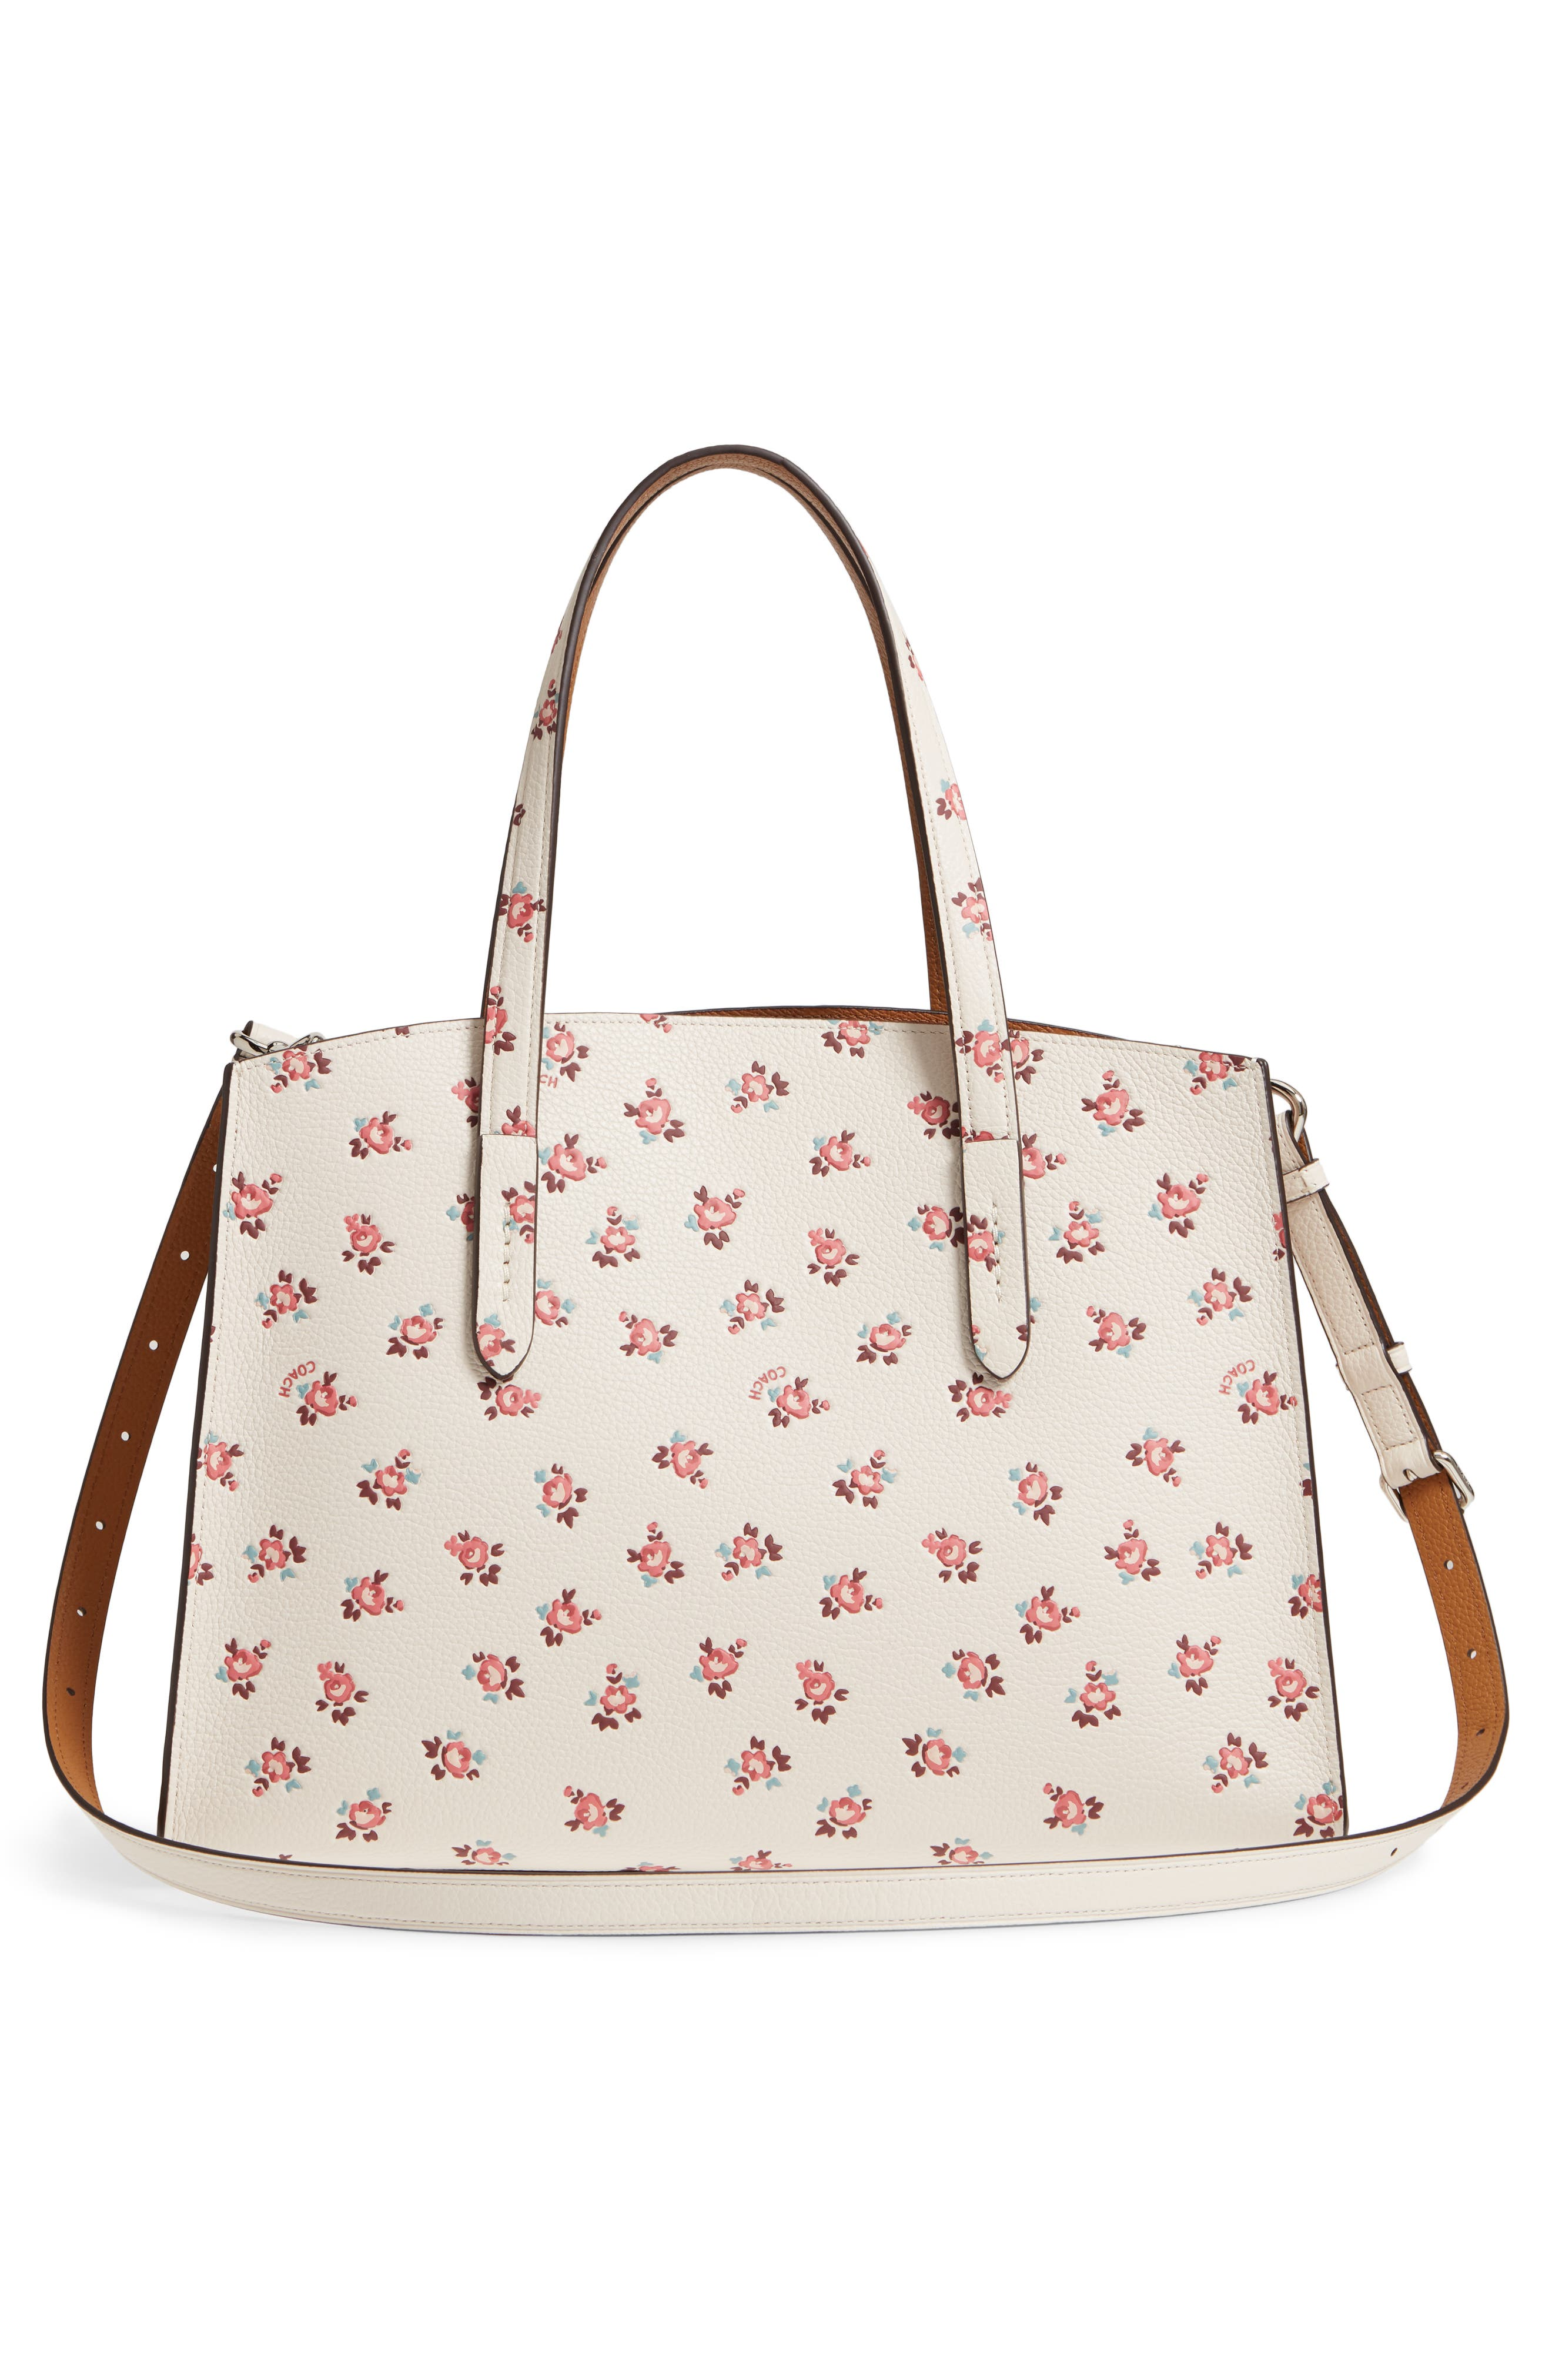 Charlie Floral Embossed Leather Tote,                             Alternate thumbnail 3, color,                             900